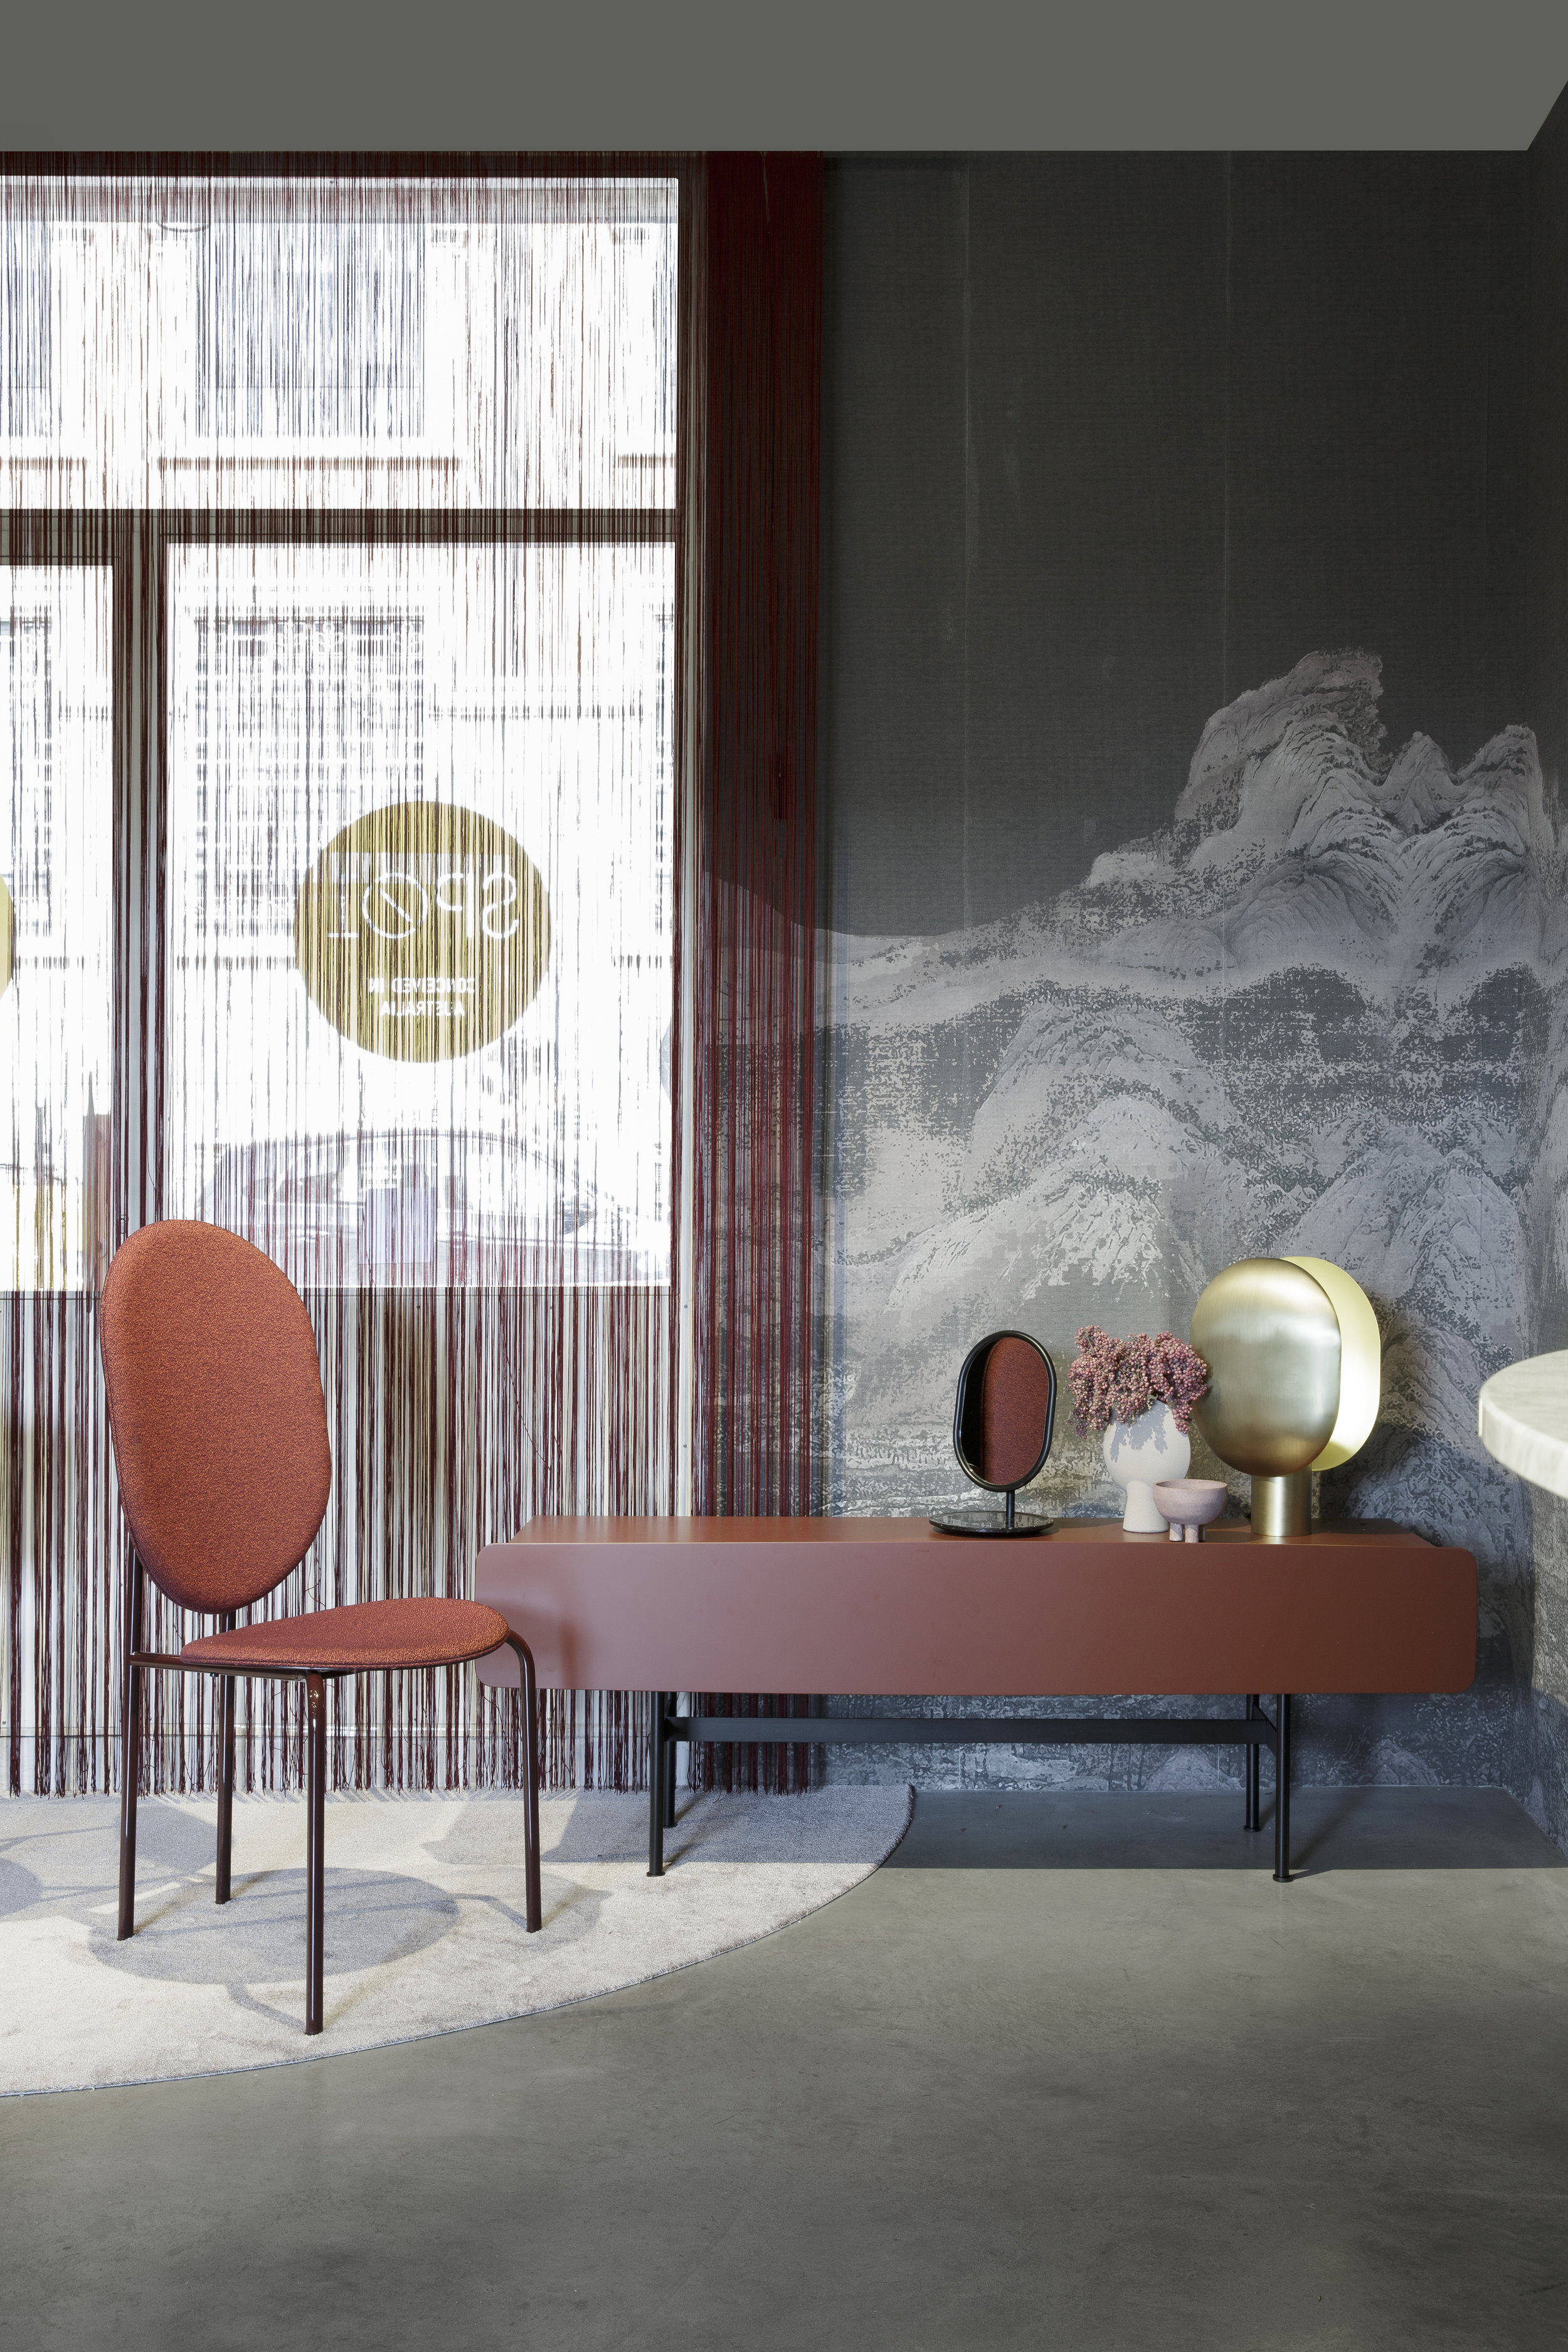 The new Michelle chair, and mirror additions, with the Yee Storage credenza. Images © SP01.